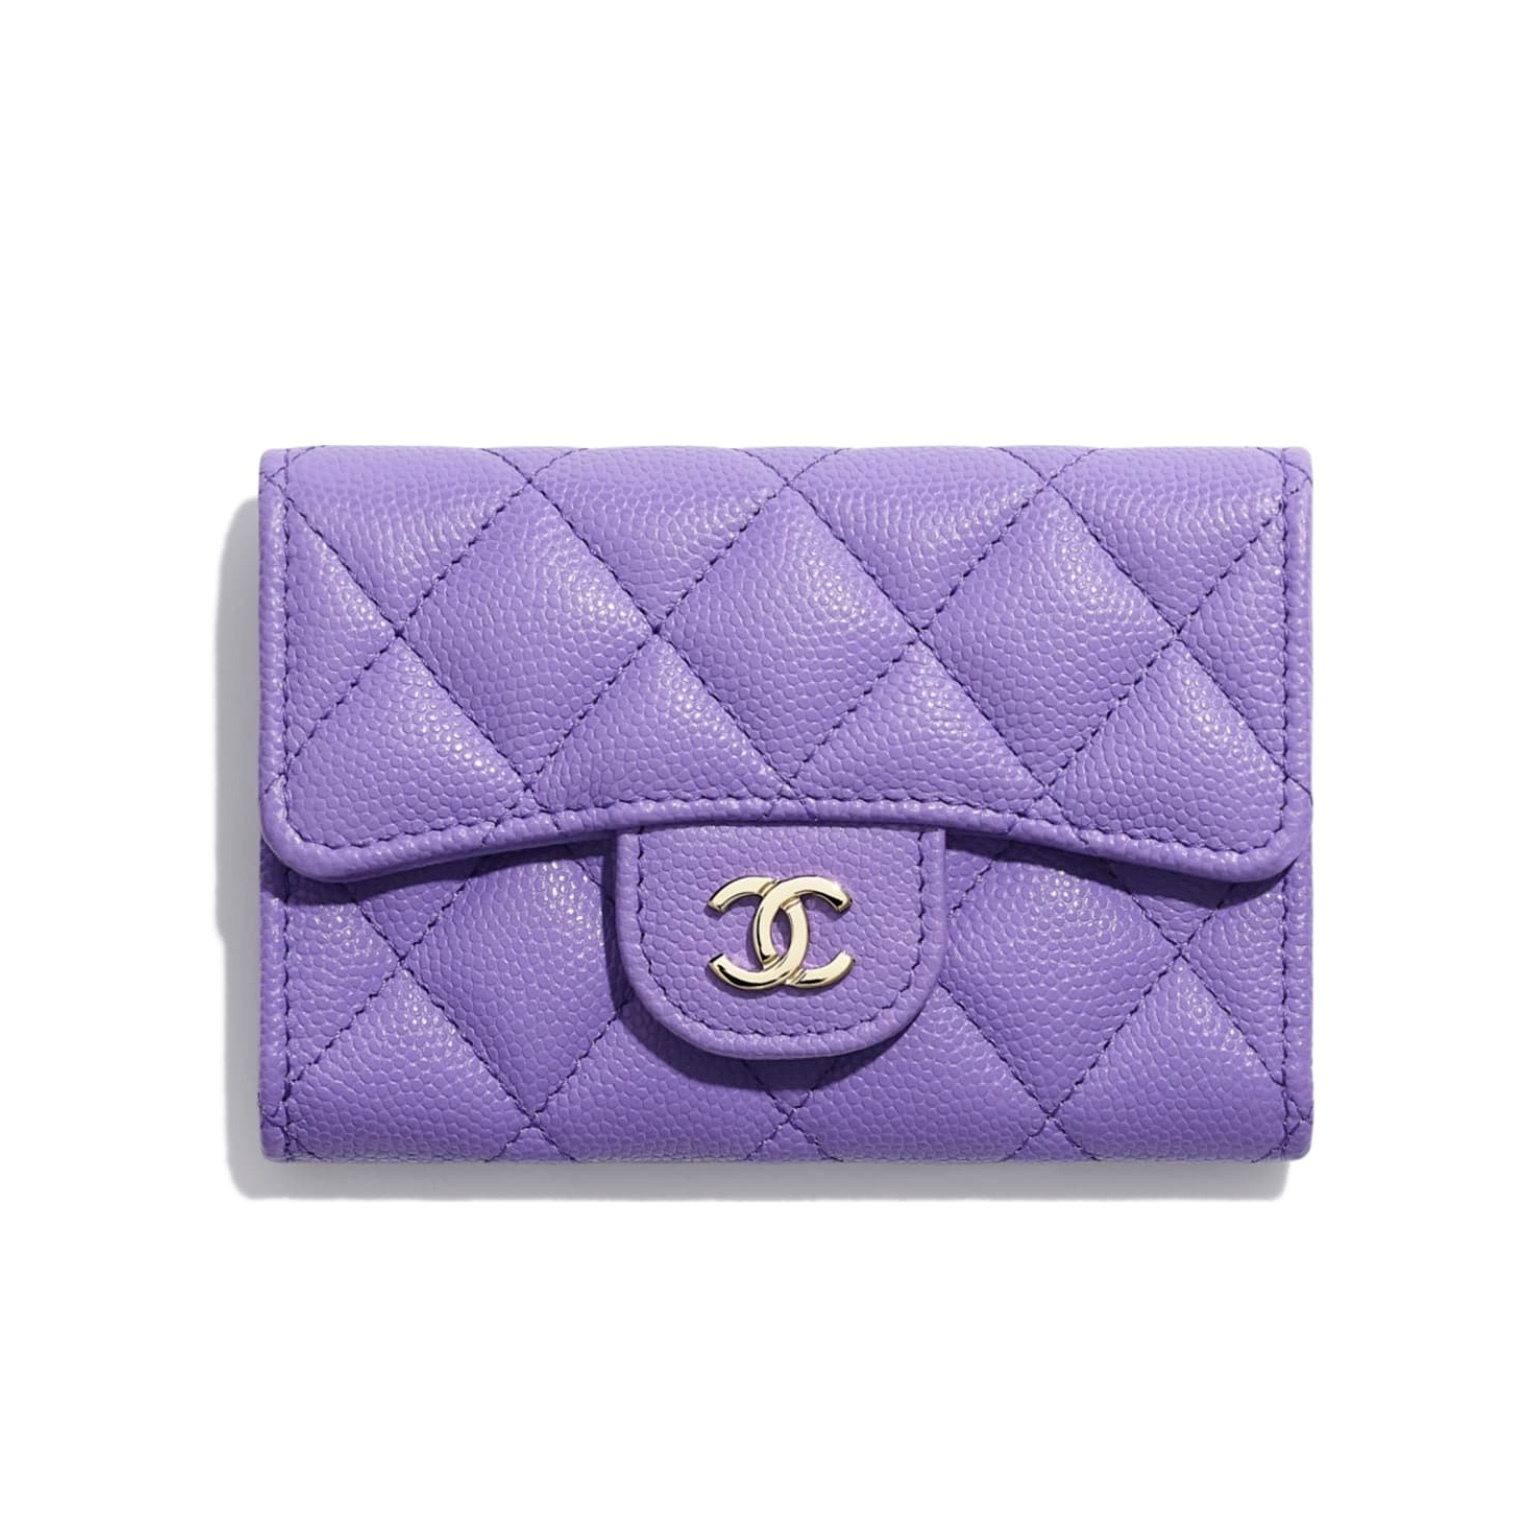 shop chanel wallets & card holders